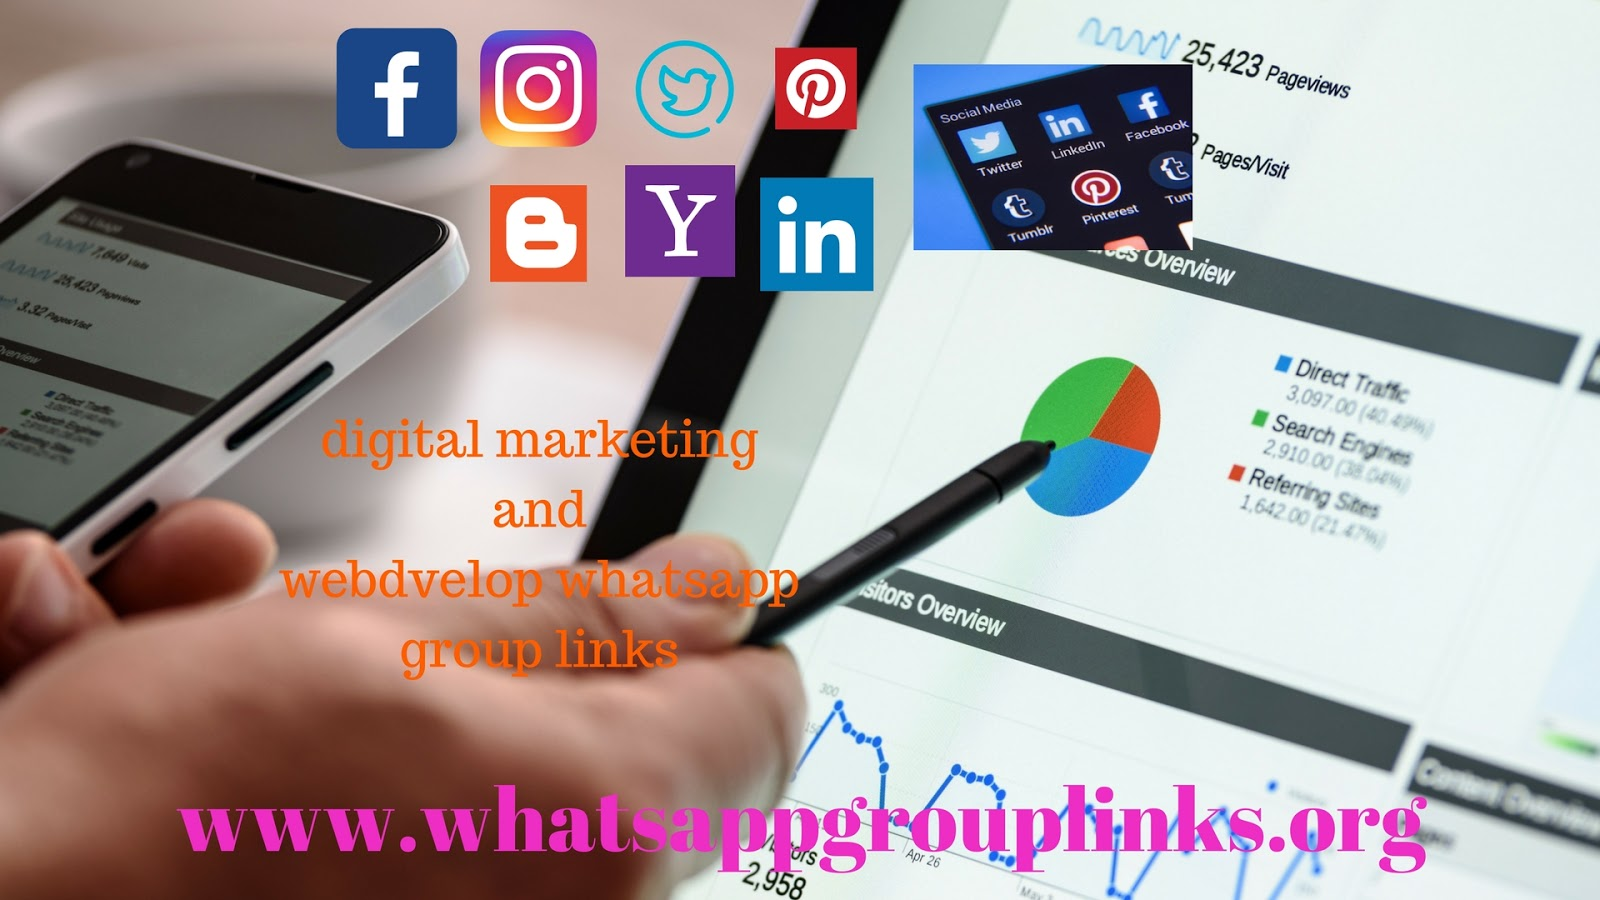 JOIN DIGITAL MARKETING AND WORDPRESS/WEBDEVLOPERS WHATSAPP